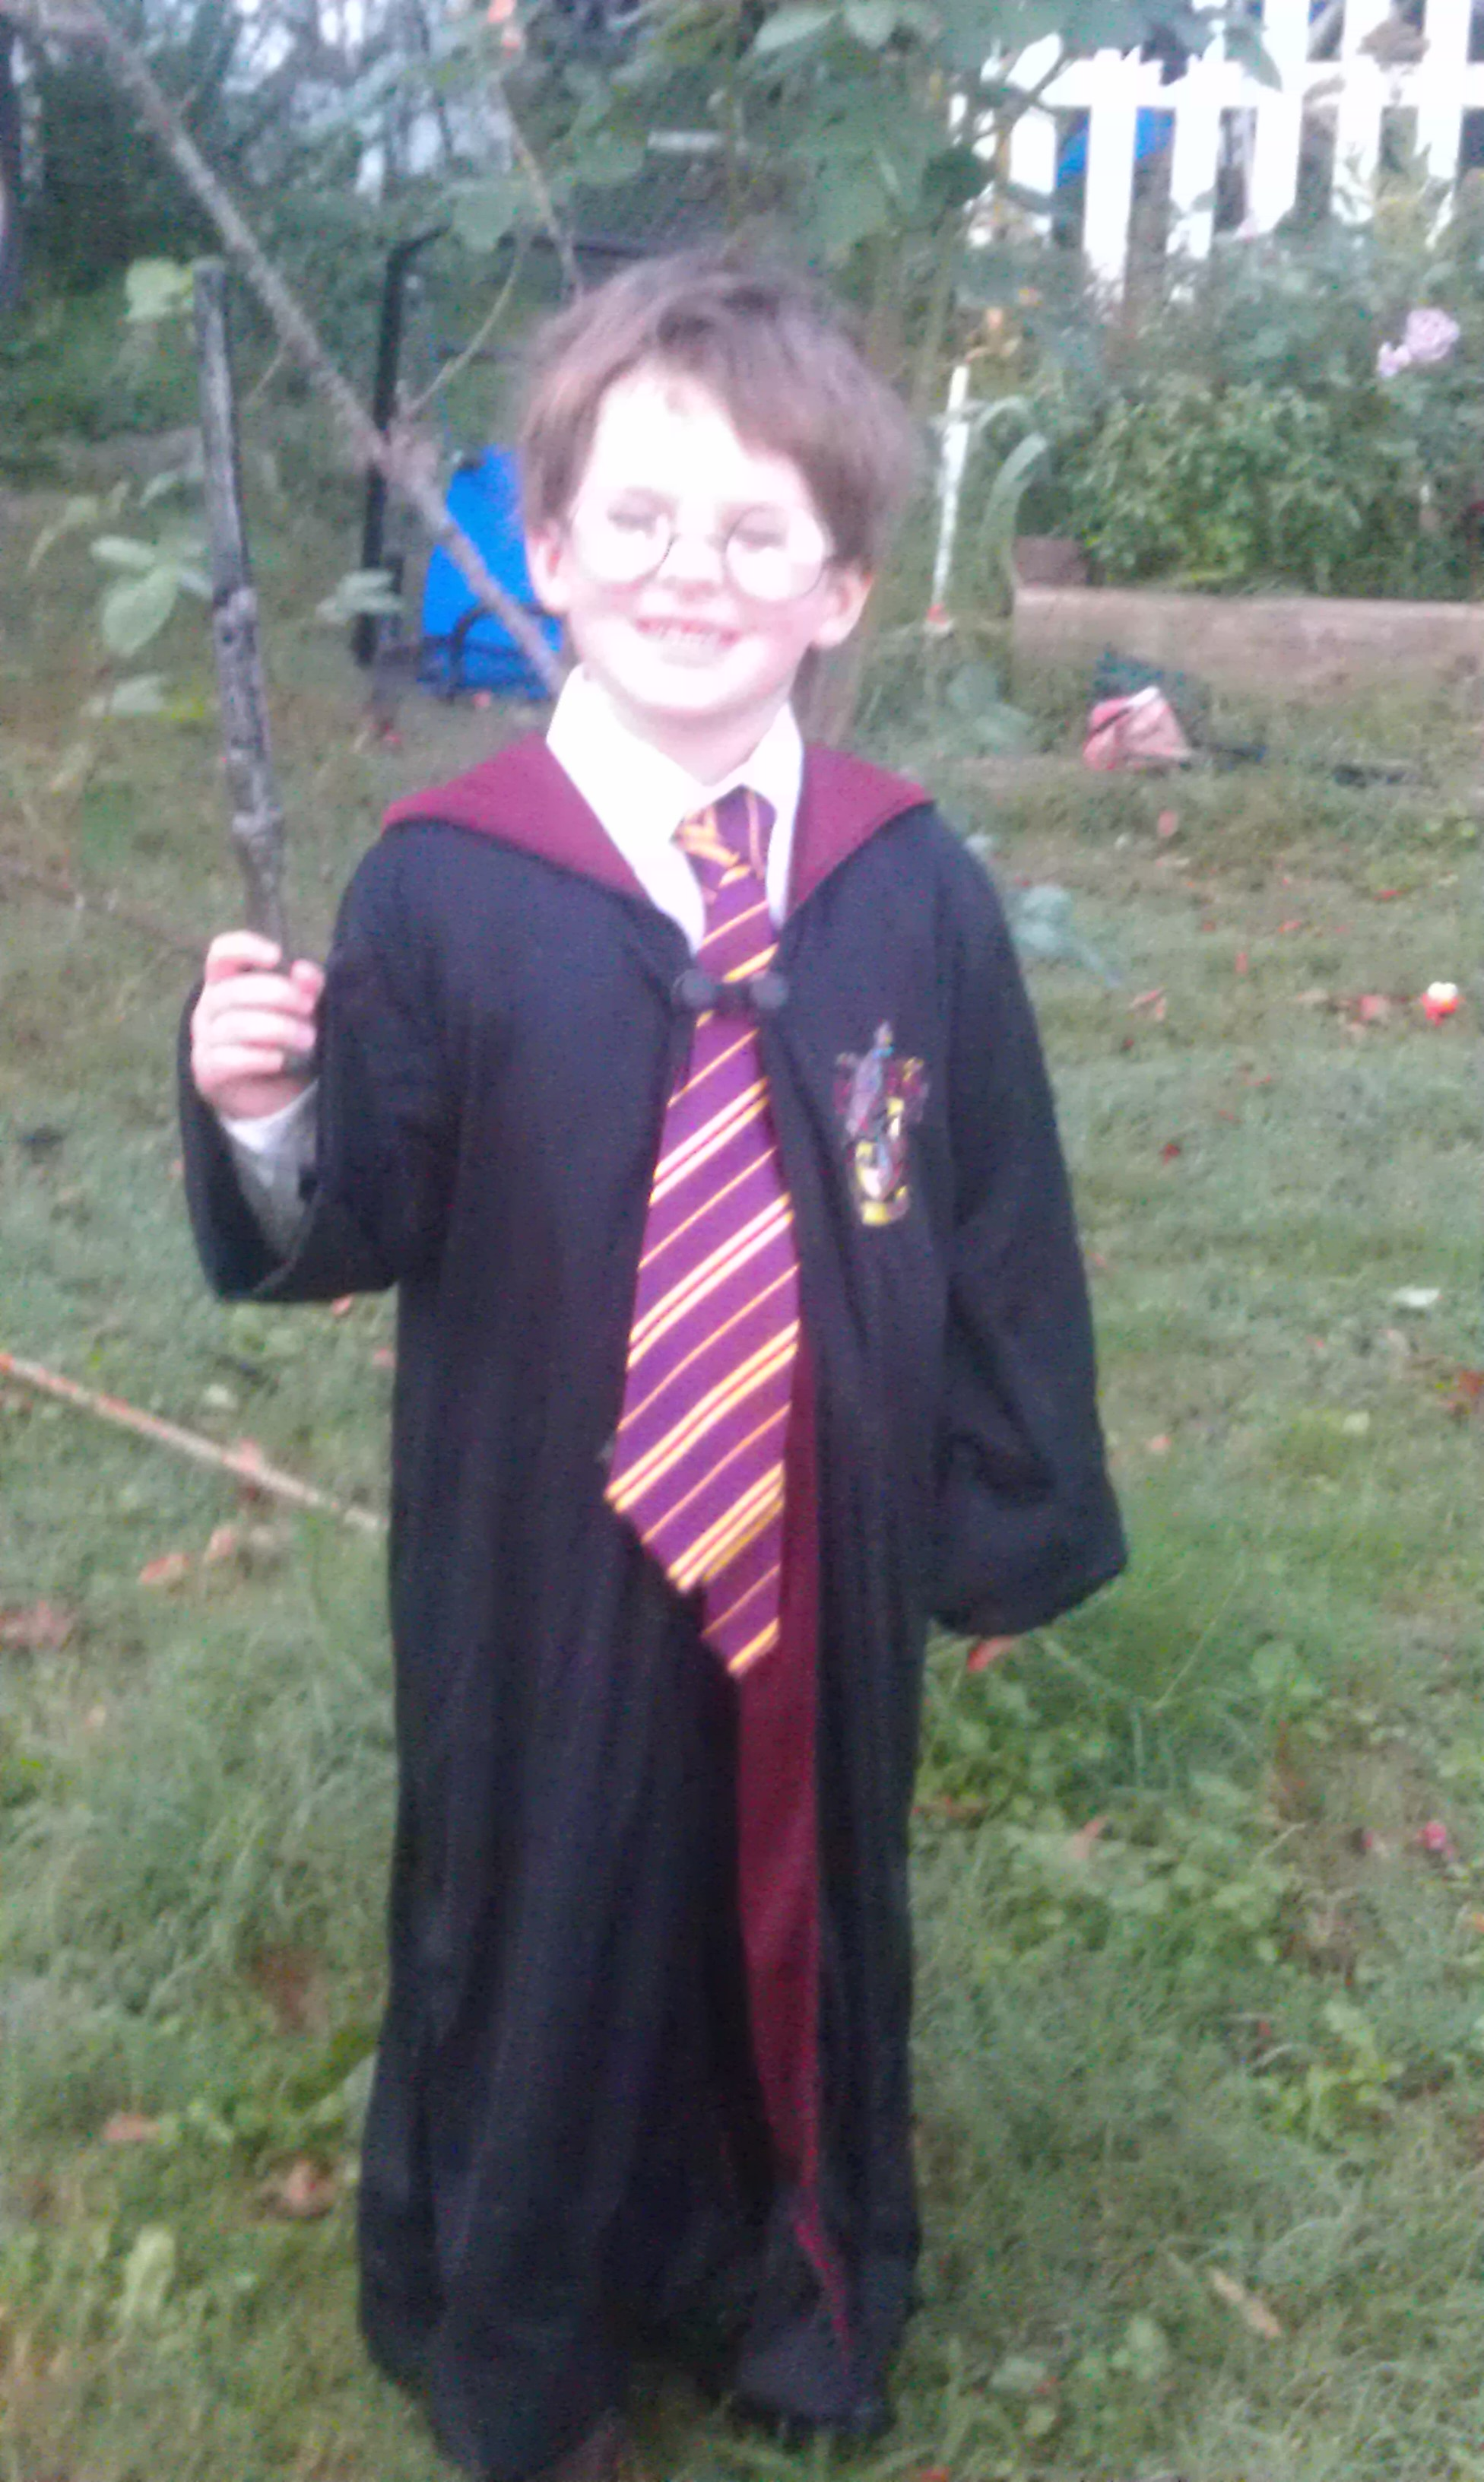 Gryffindor!  Actually this is Young Ethan